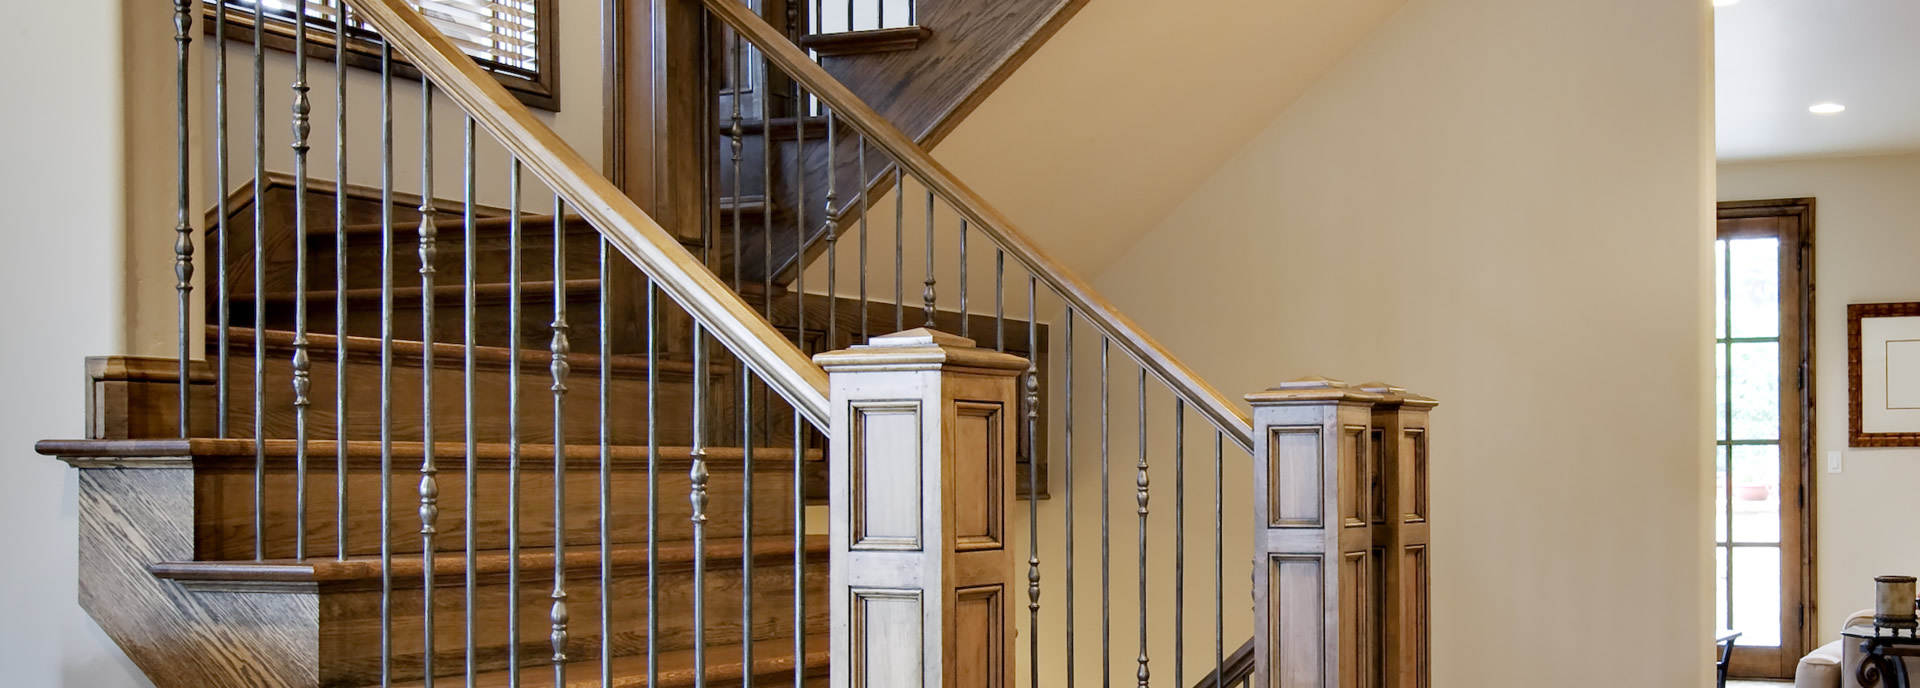 Wrought Iron Railings: An Elegant Design Option Alpharetta, GA